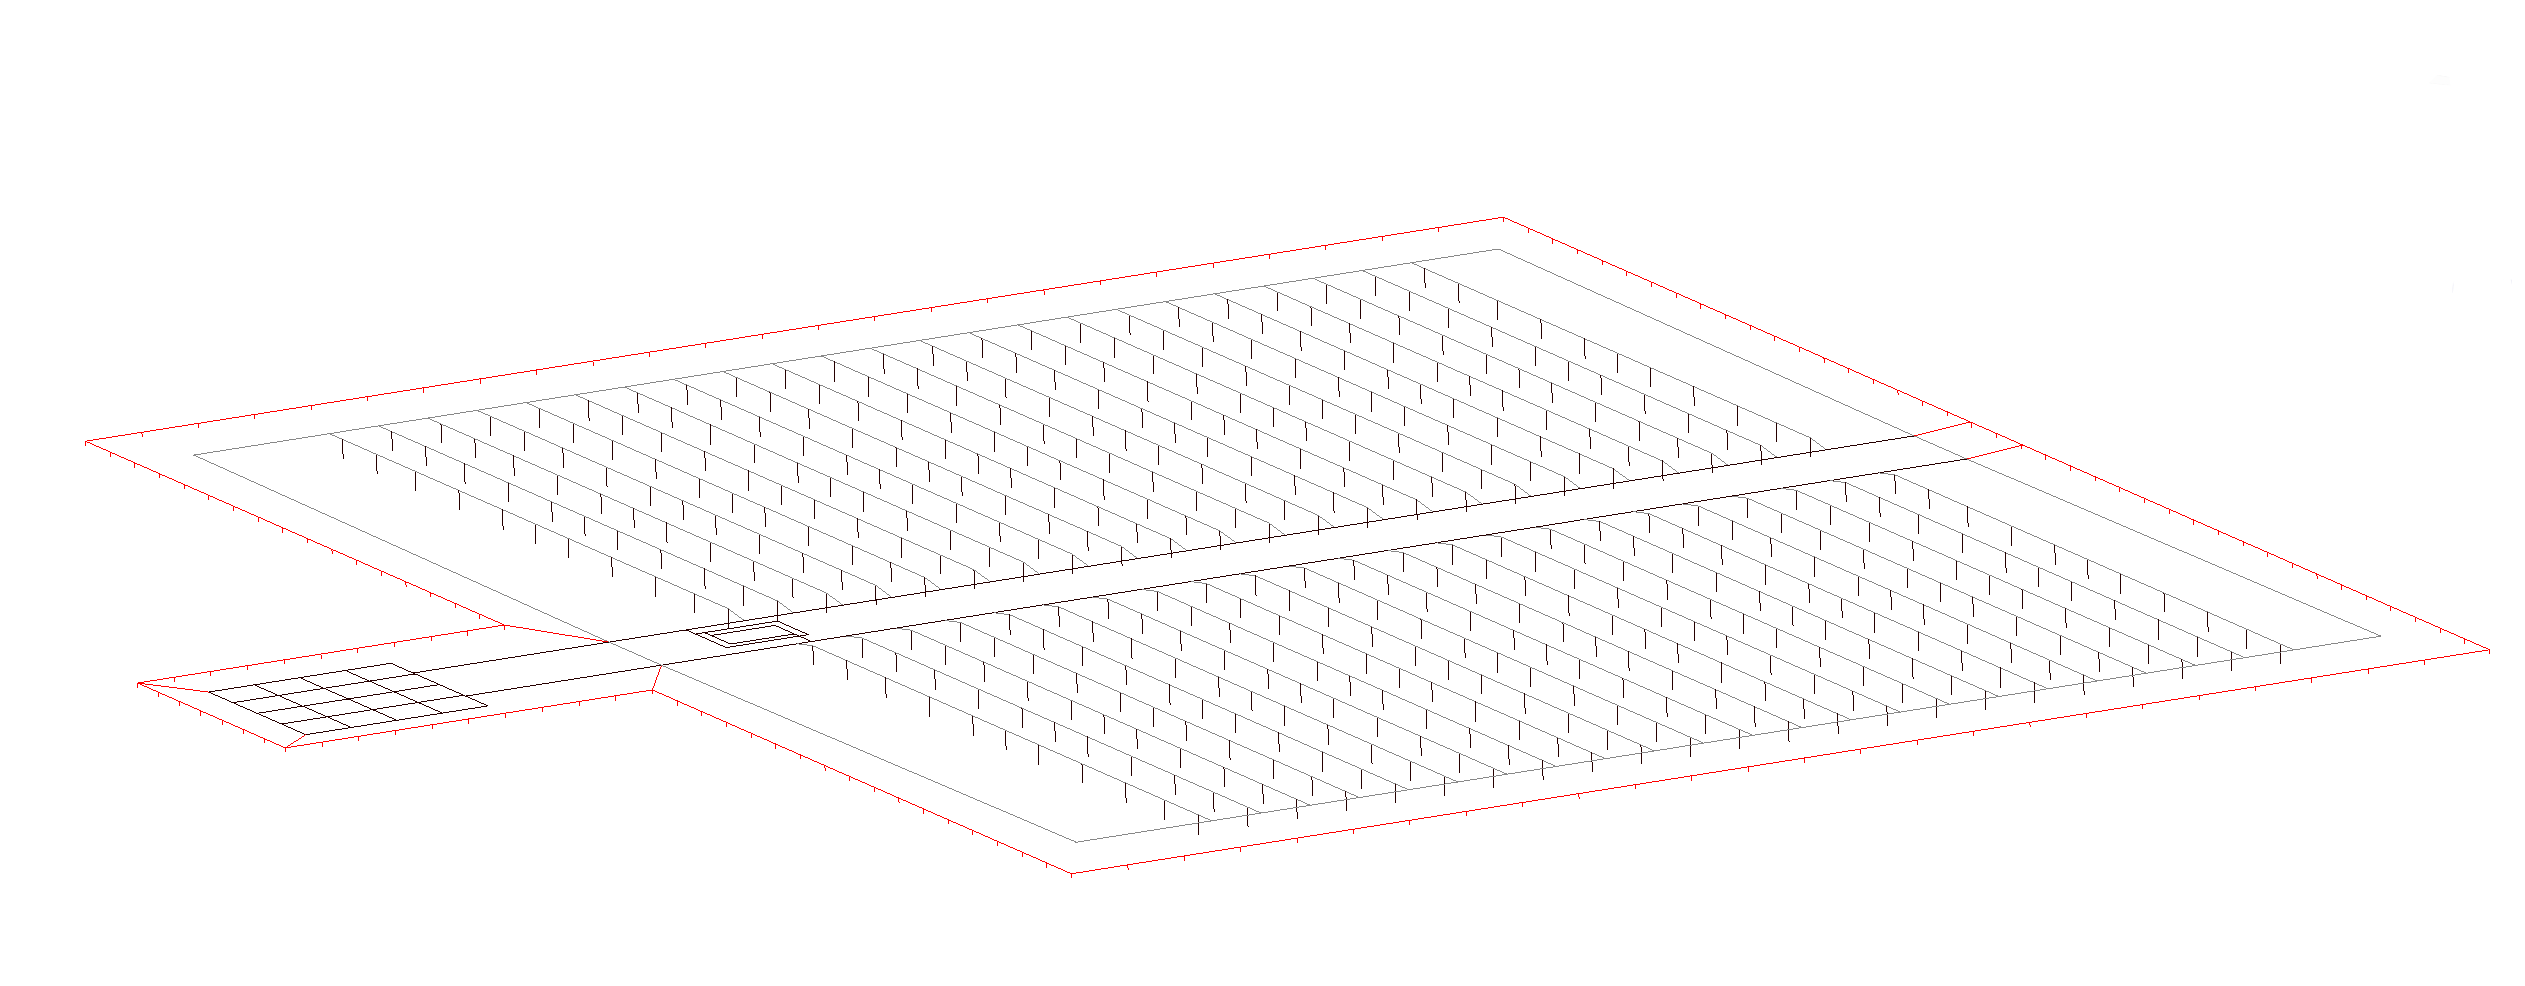 Appendix image 3 Main PV grid auxilliary substation fence earthing model in CAD - Earthing Design and Modelling Guide for Solar Farms